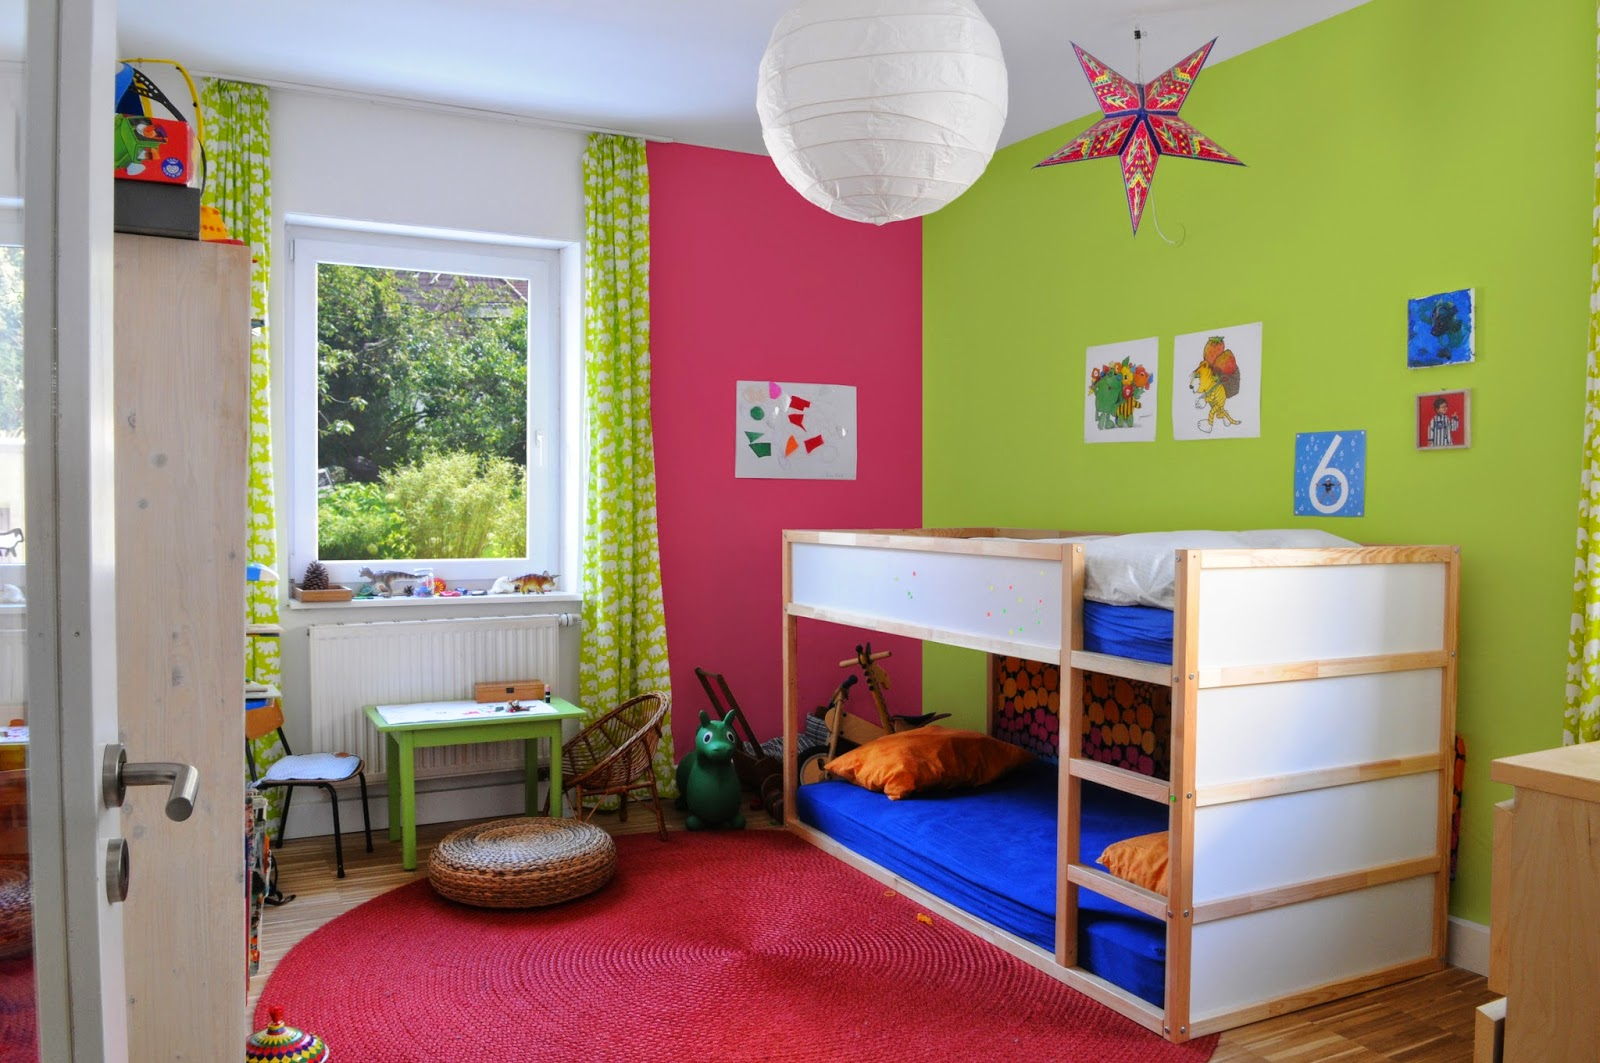 Ideas para pintar un dormitorio infantil ideas para decorar dormitorios - Decorar habitacion nino ...